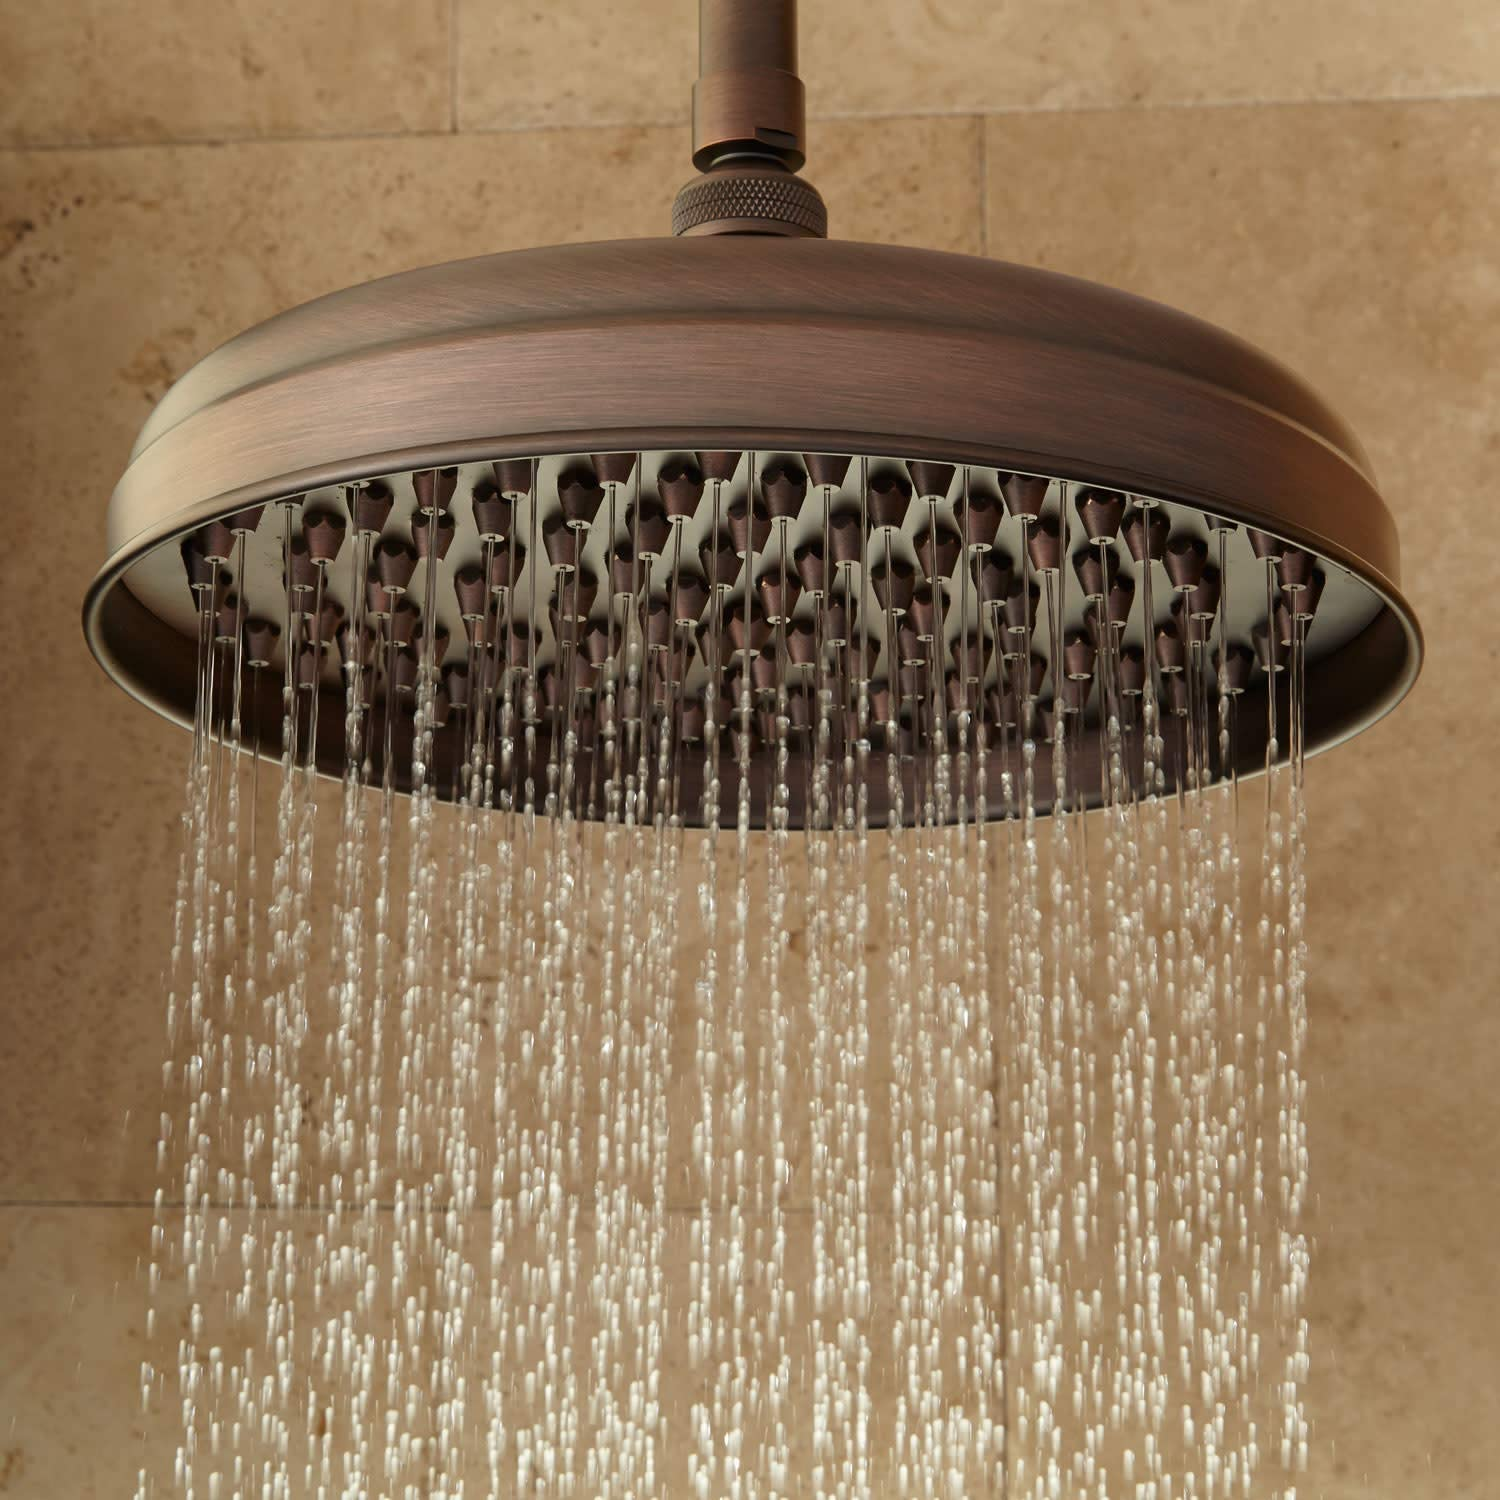 Signature Hardware 214373 12 Lambert 1.9 GPM Single Function Rain Shower Head